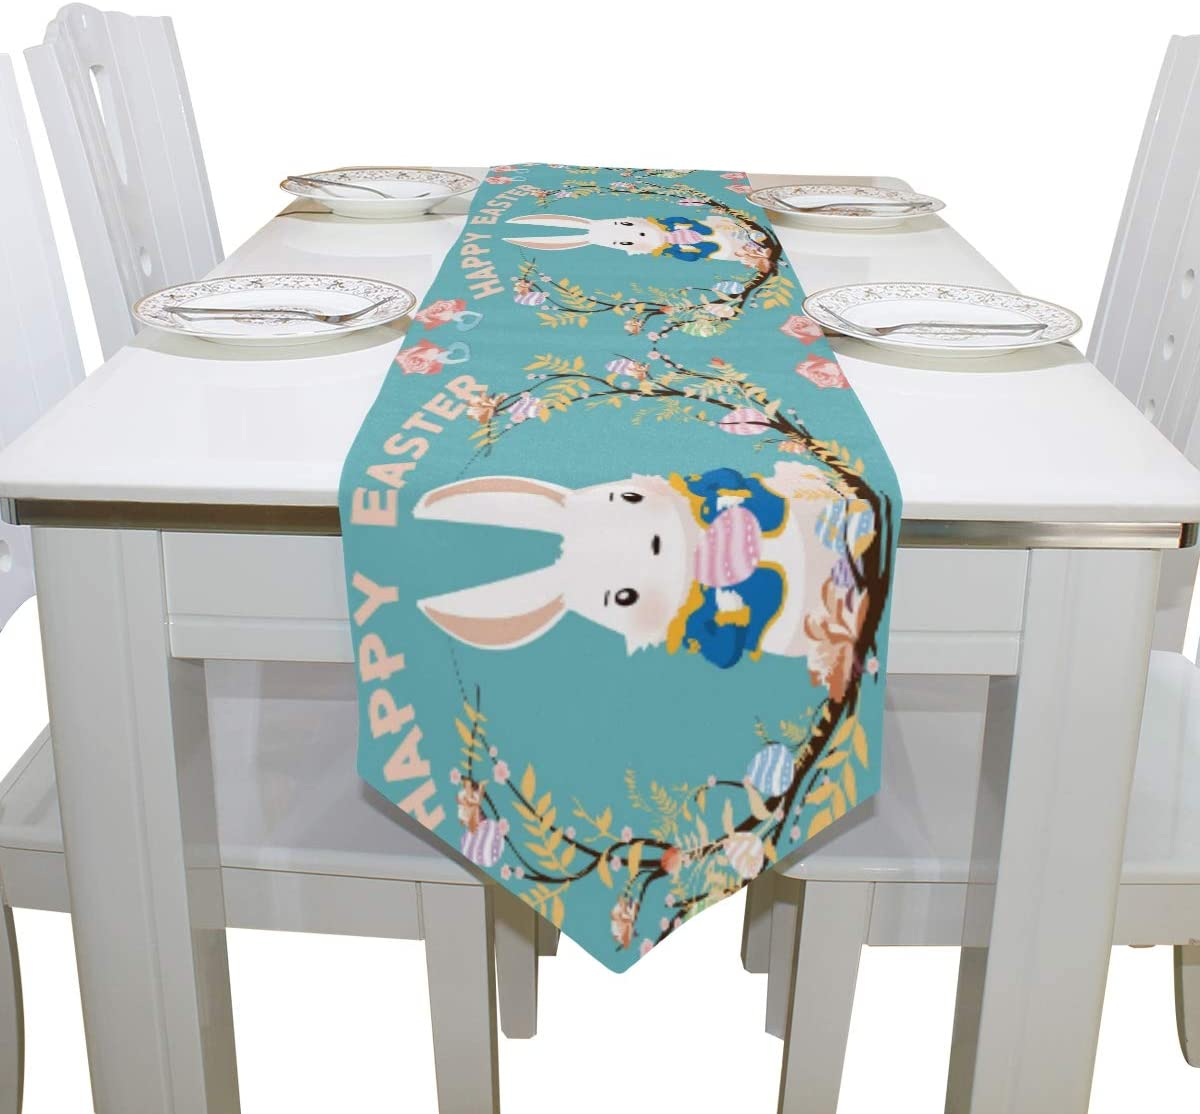 WOOR Double-Sided Easter Bunny Day Egg Rabbit Table Runner 13 x 70 Inches Long,Table Cloth Runner for Wedding Party Holiday Kitchen Dining Home Everyday Decor